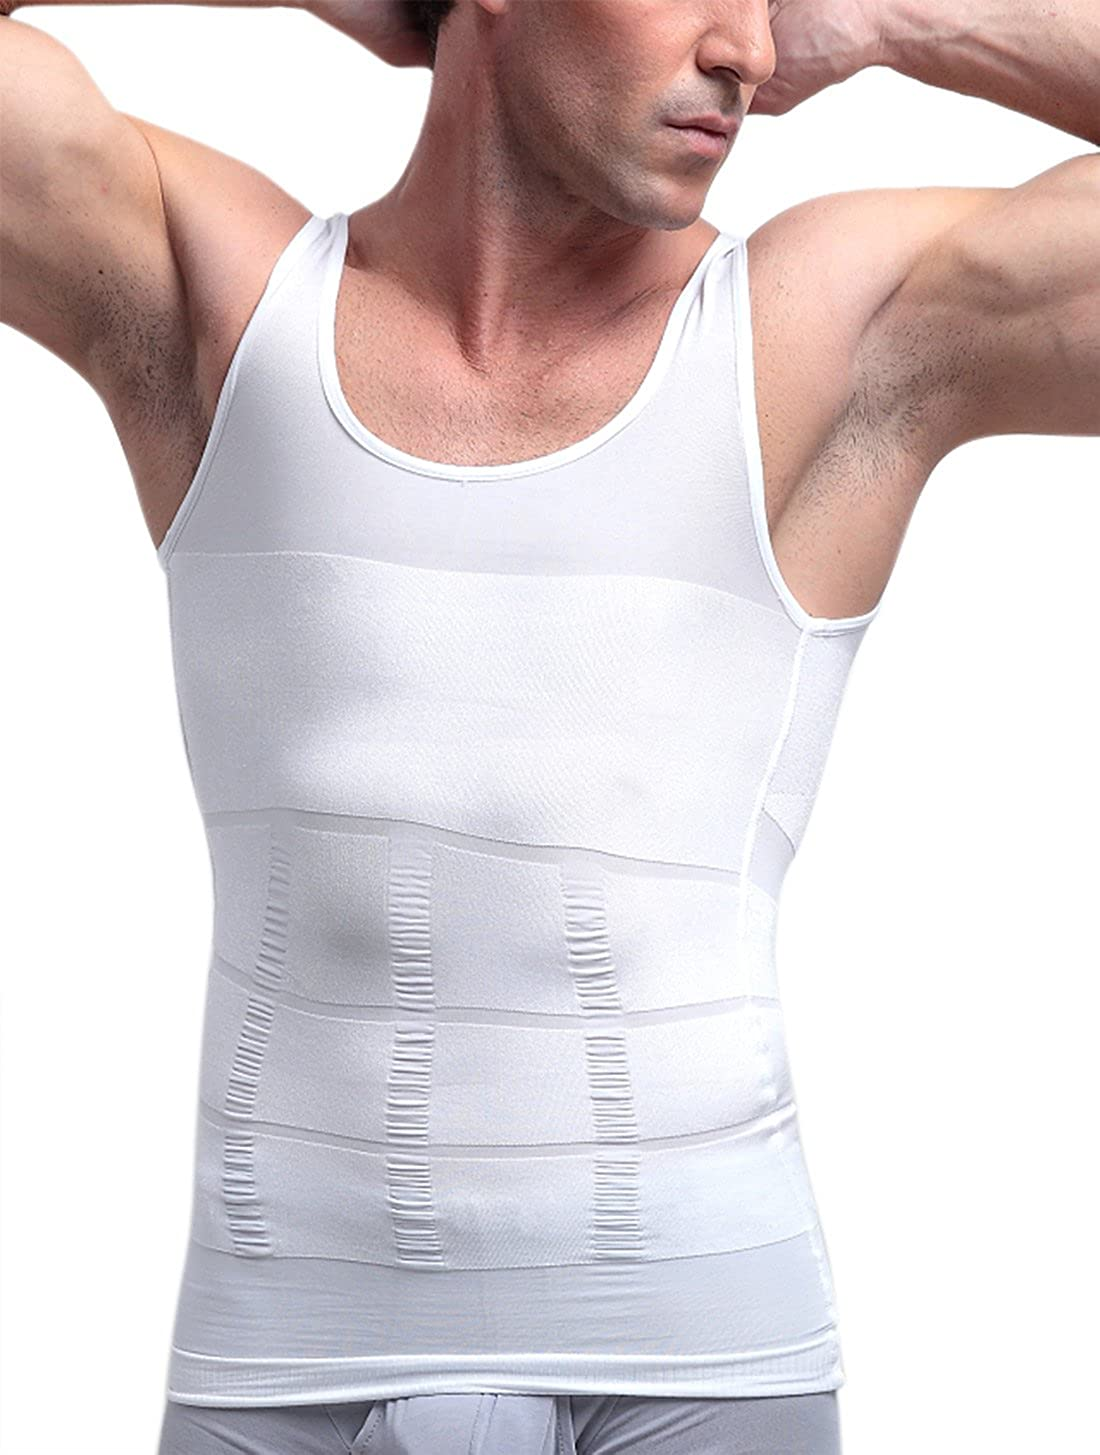 33575e22aefed Men s Slimming Body Shaper Vests Belly Waist Control Shirt Abs Abdomen  Tariner Size Small White at Amazon Men s Clothing store